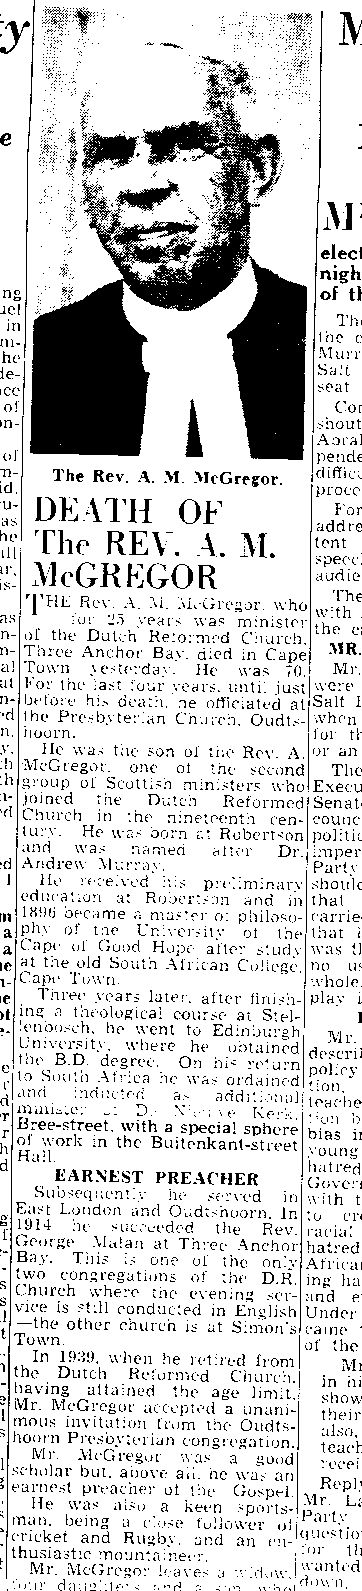 Report of the death of Rev Andrew McGregor (Jnr) in the Cape Times, 21 September 1943